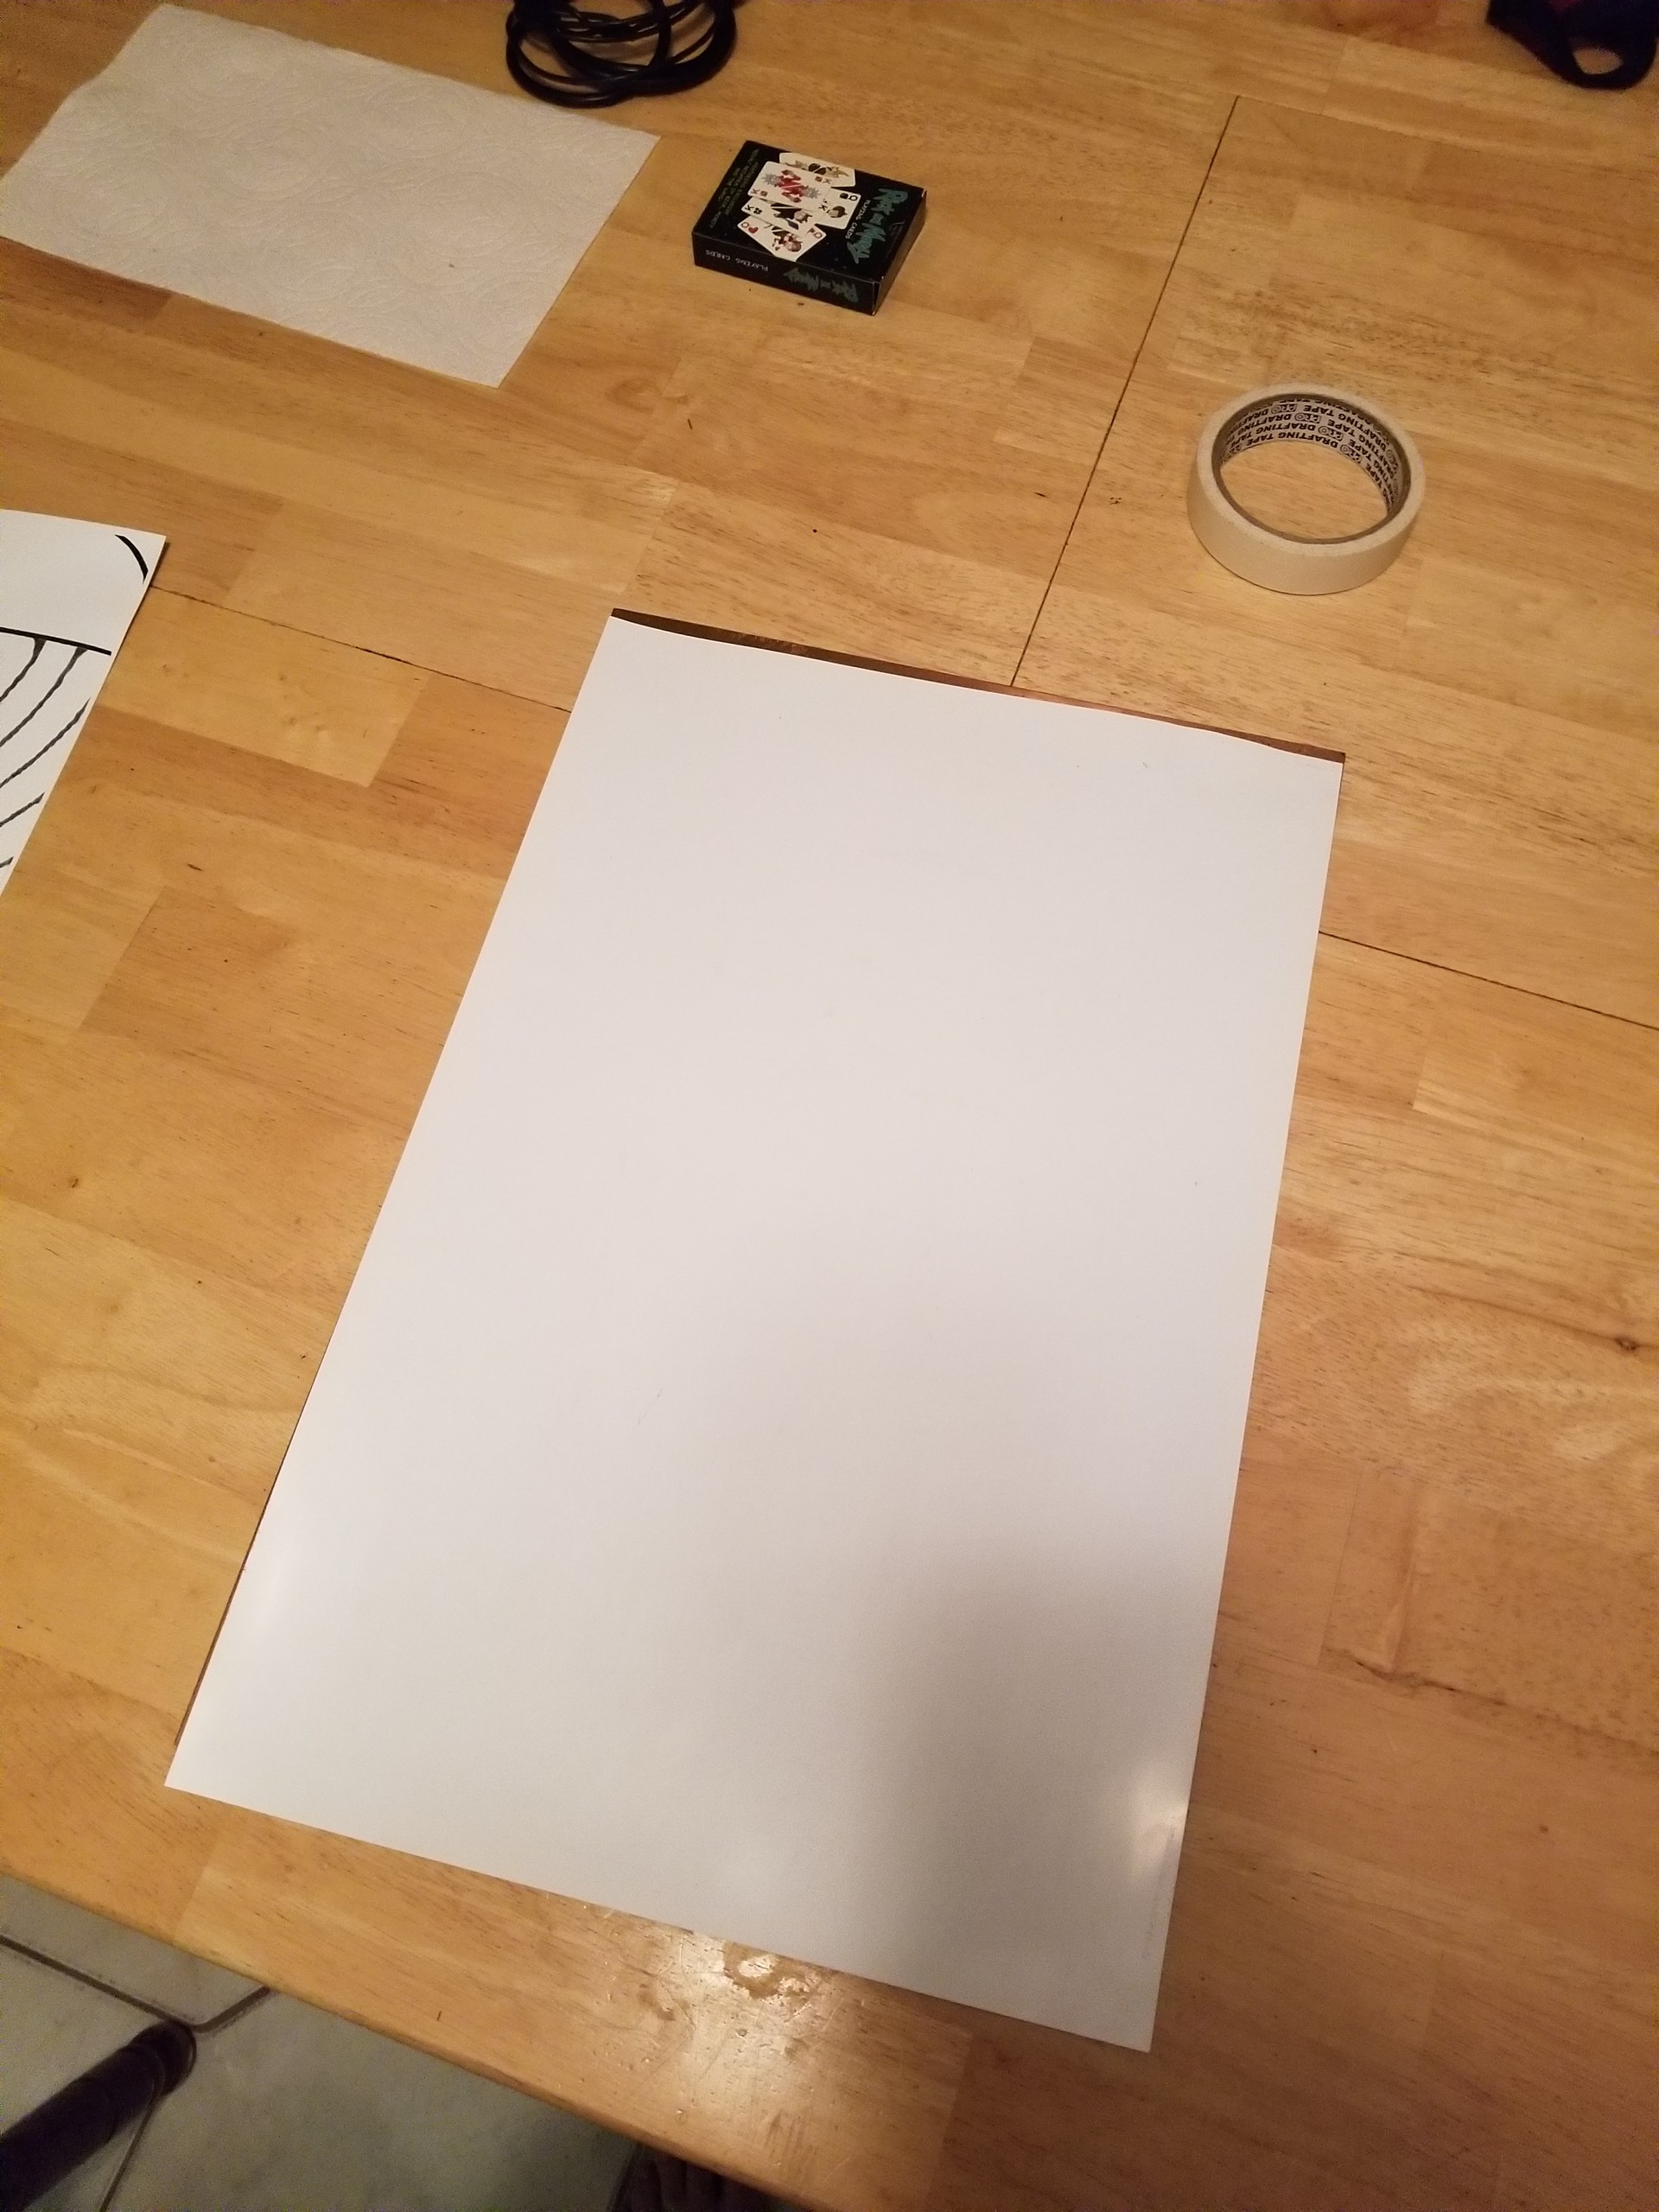 Placement of mylar onto copper plate and tape it to the surface.